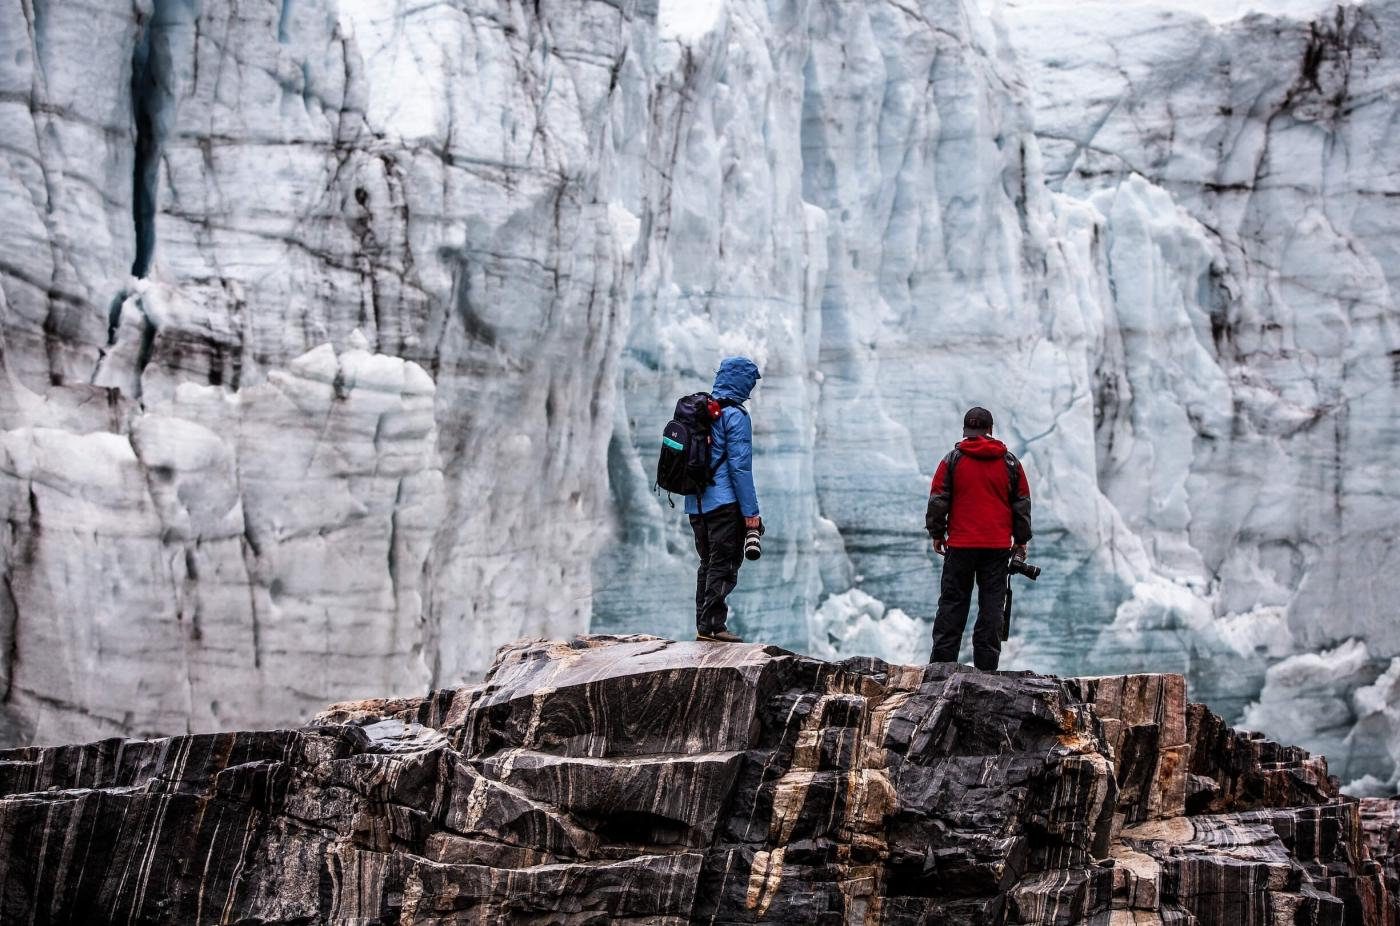 Two photographers on a photo tour by the Russell Glacier in Greenland. Photo by Mads Pihl